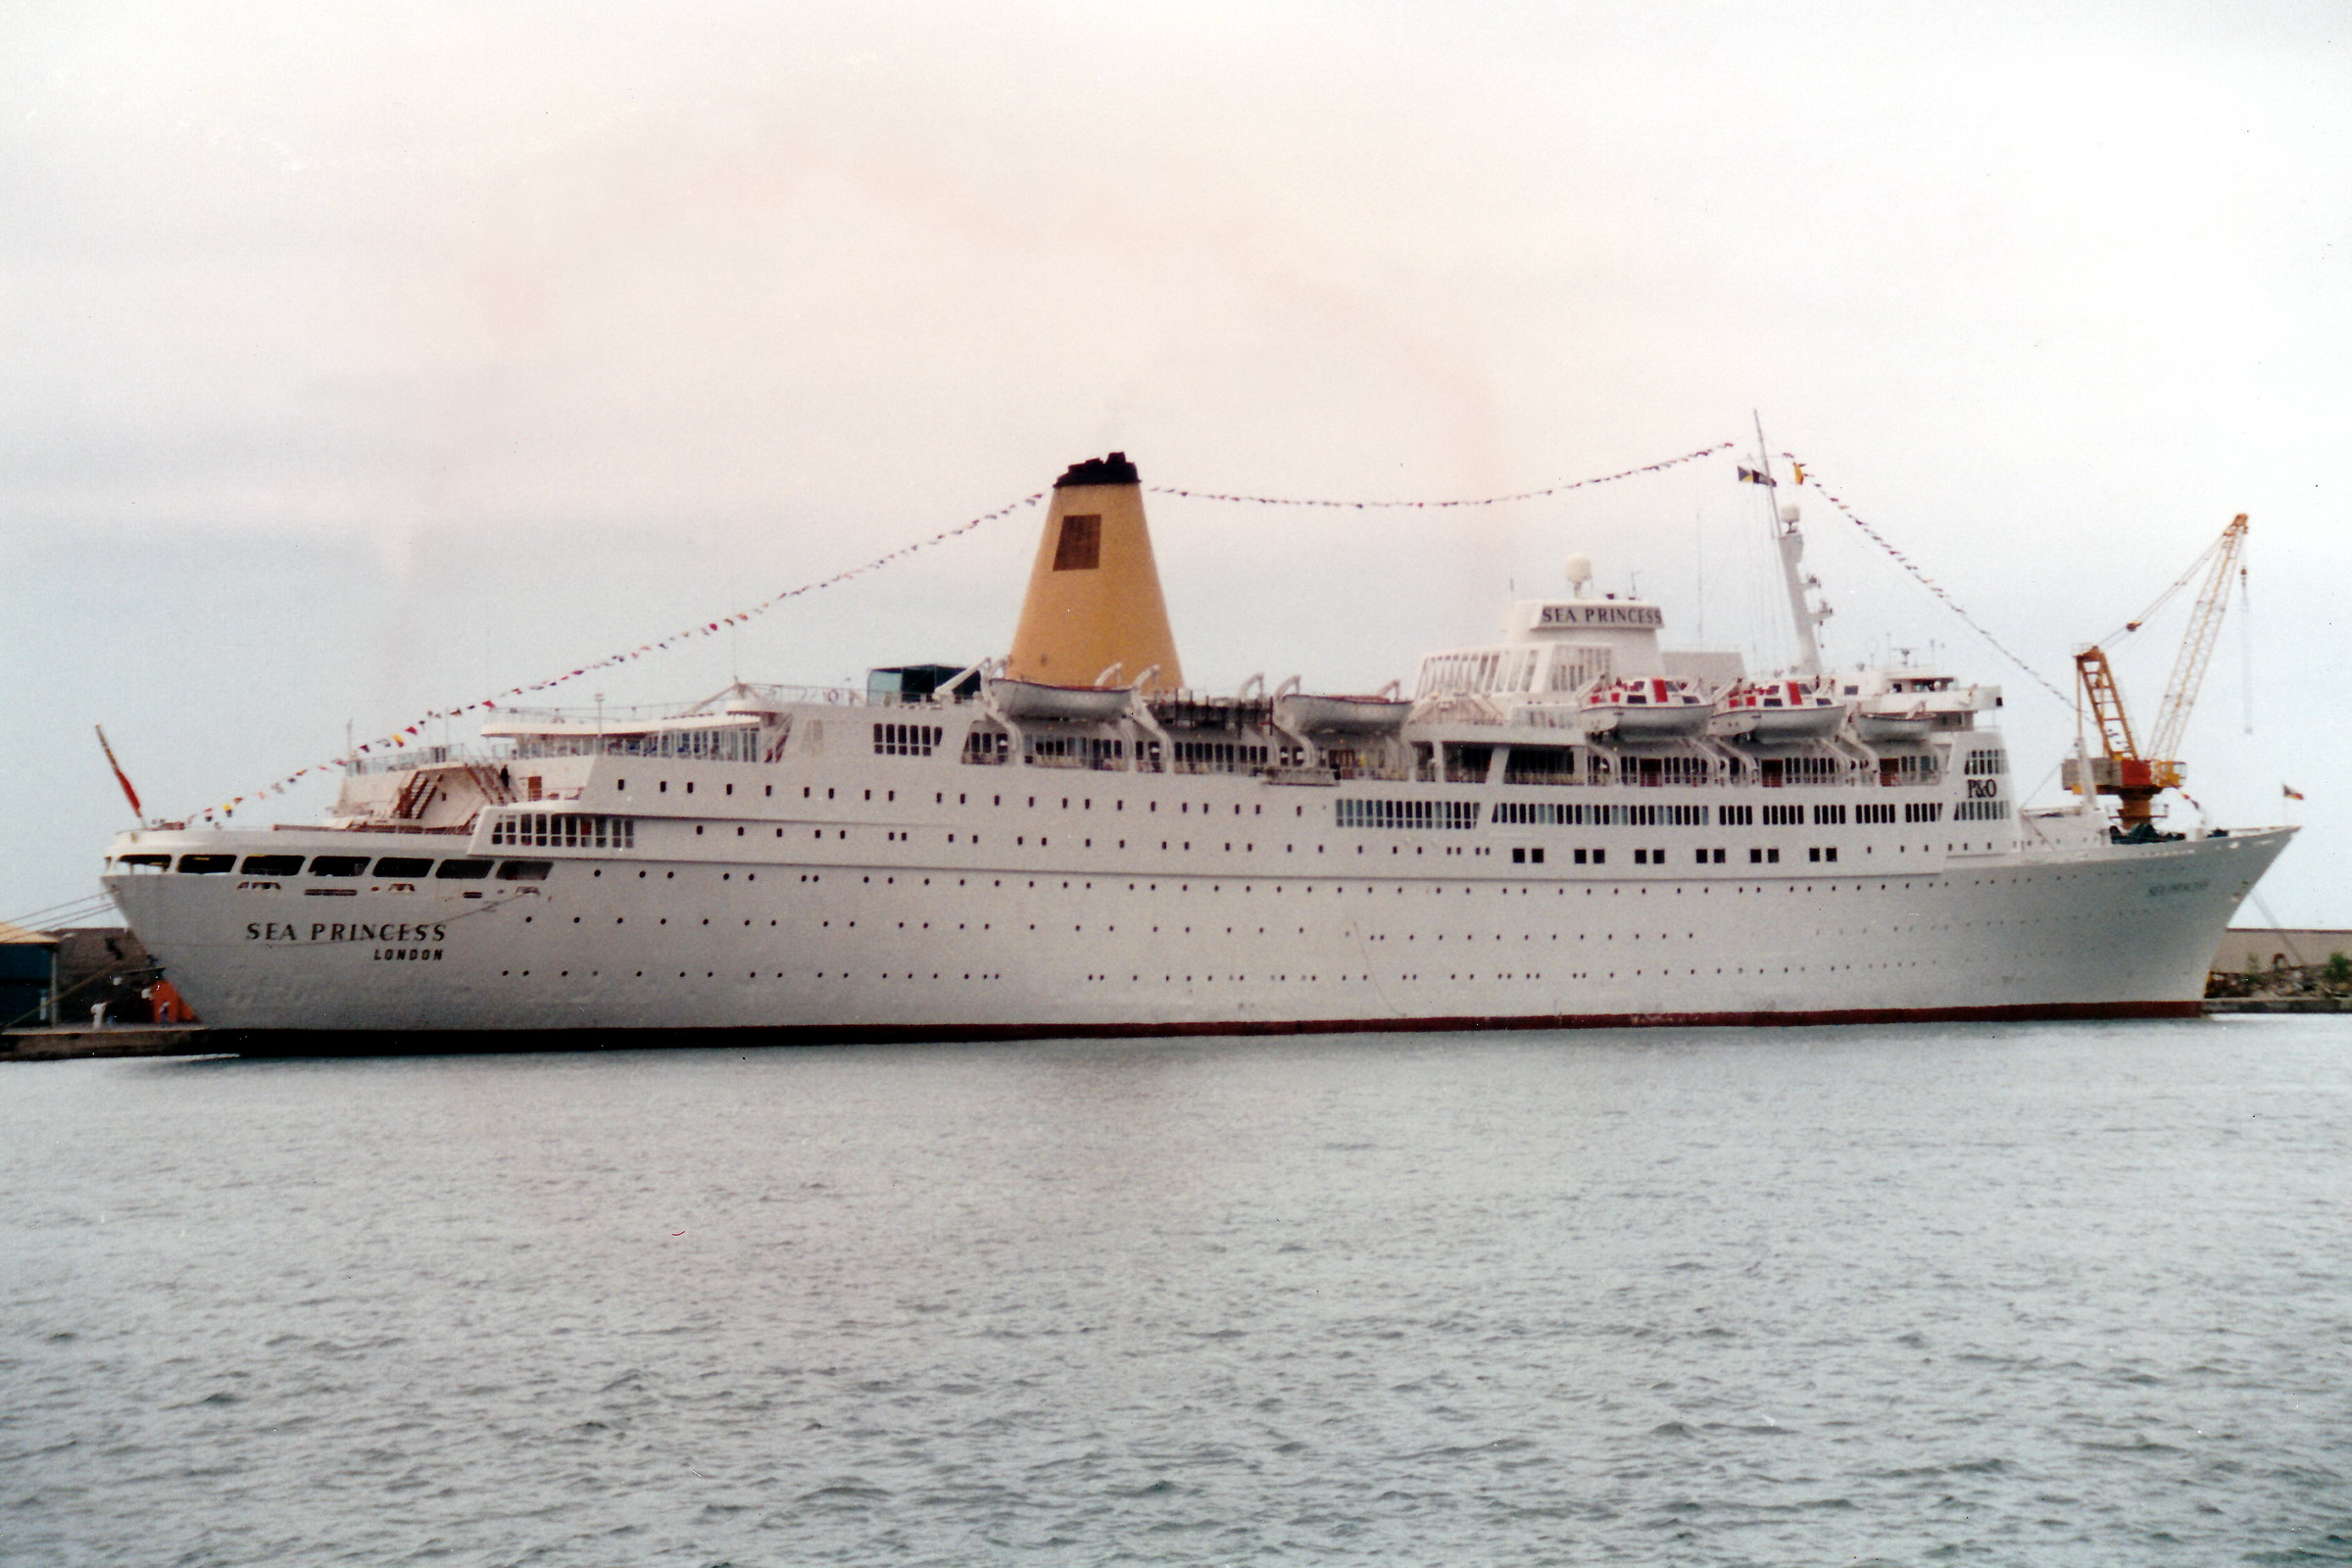 02SEA_PRINCESS_6512354_©Noray_(4)